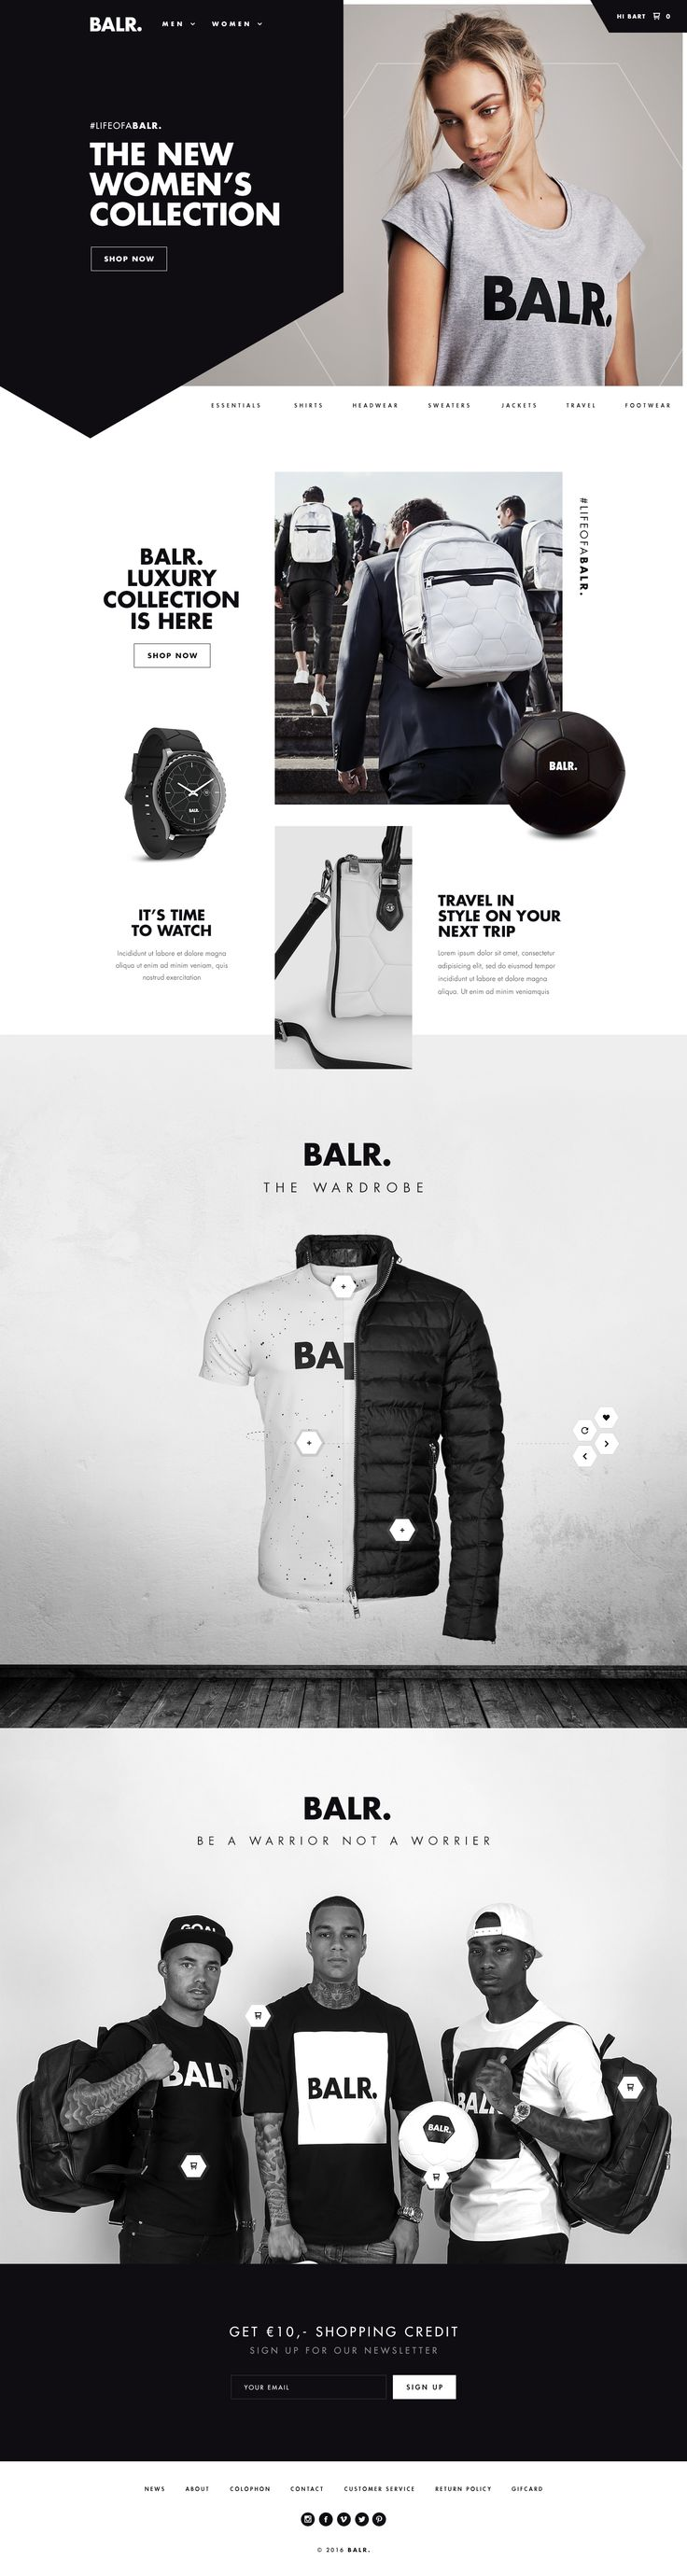 Ui design concept for Balr.com eCommerce website by Bart Ebbekink.